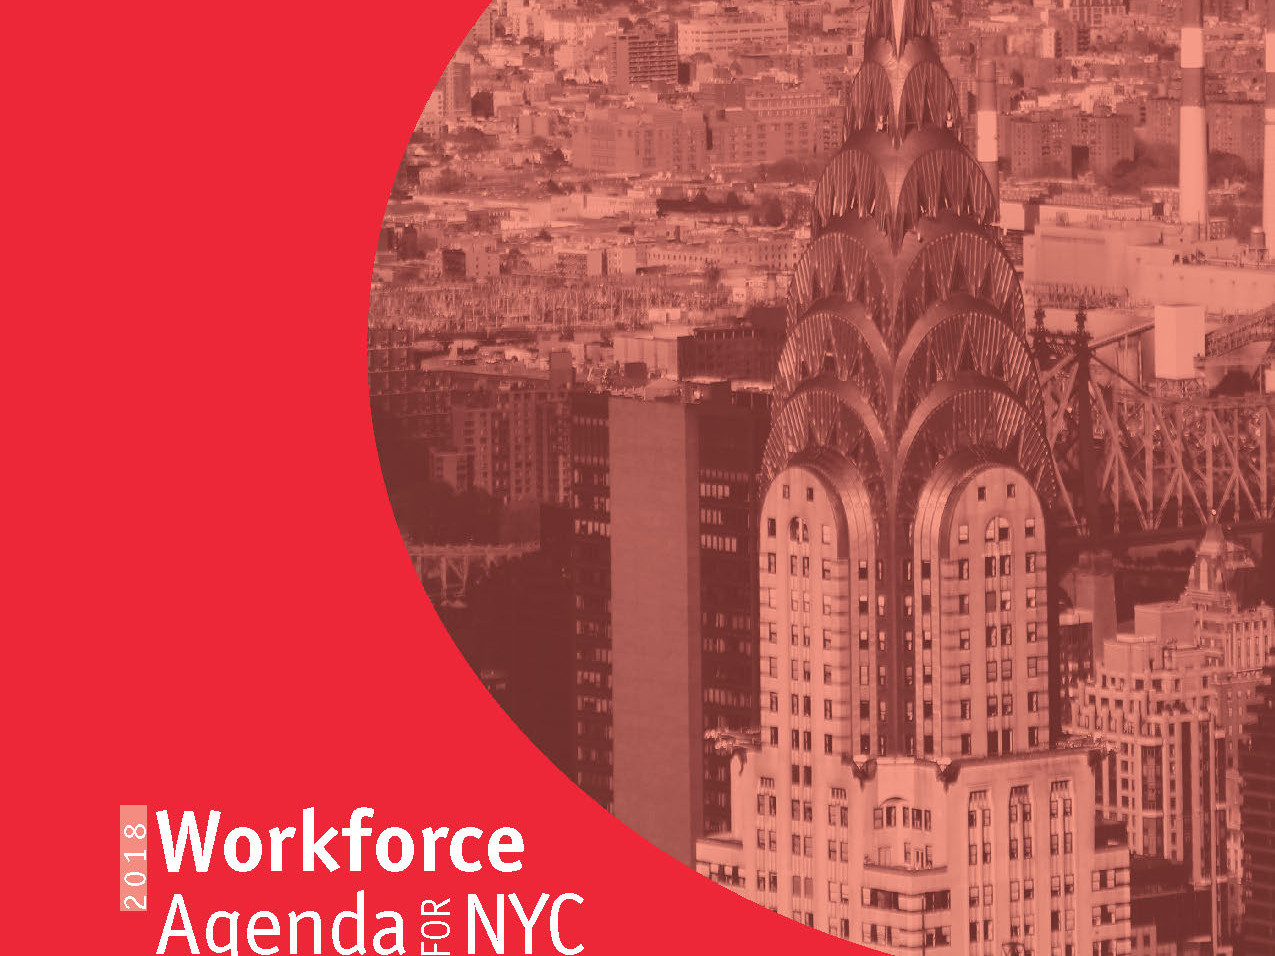 Workforce Agenda for NYC Curriculum Guide